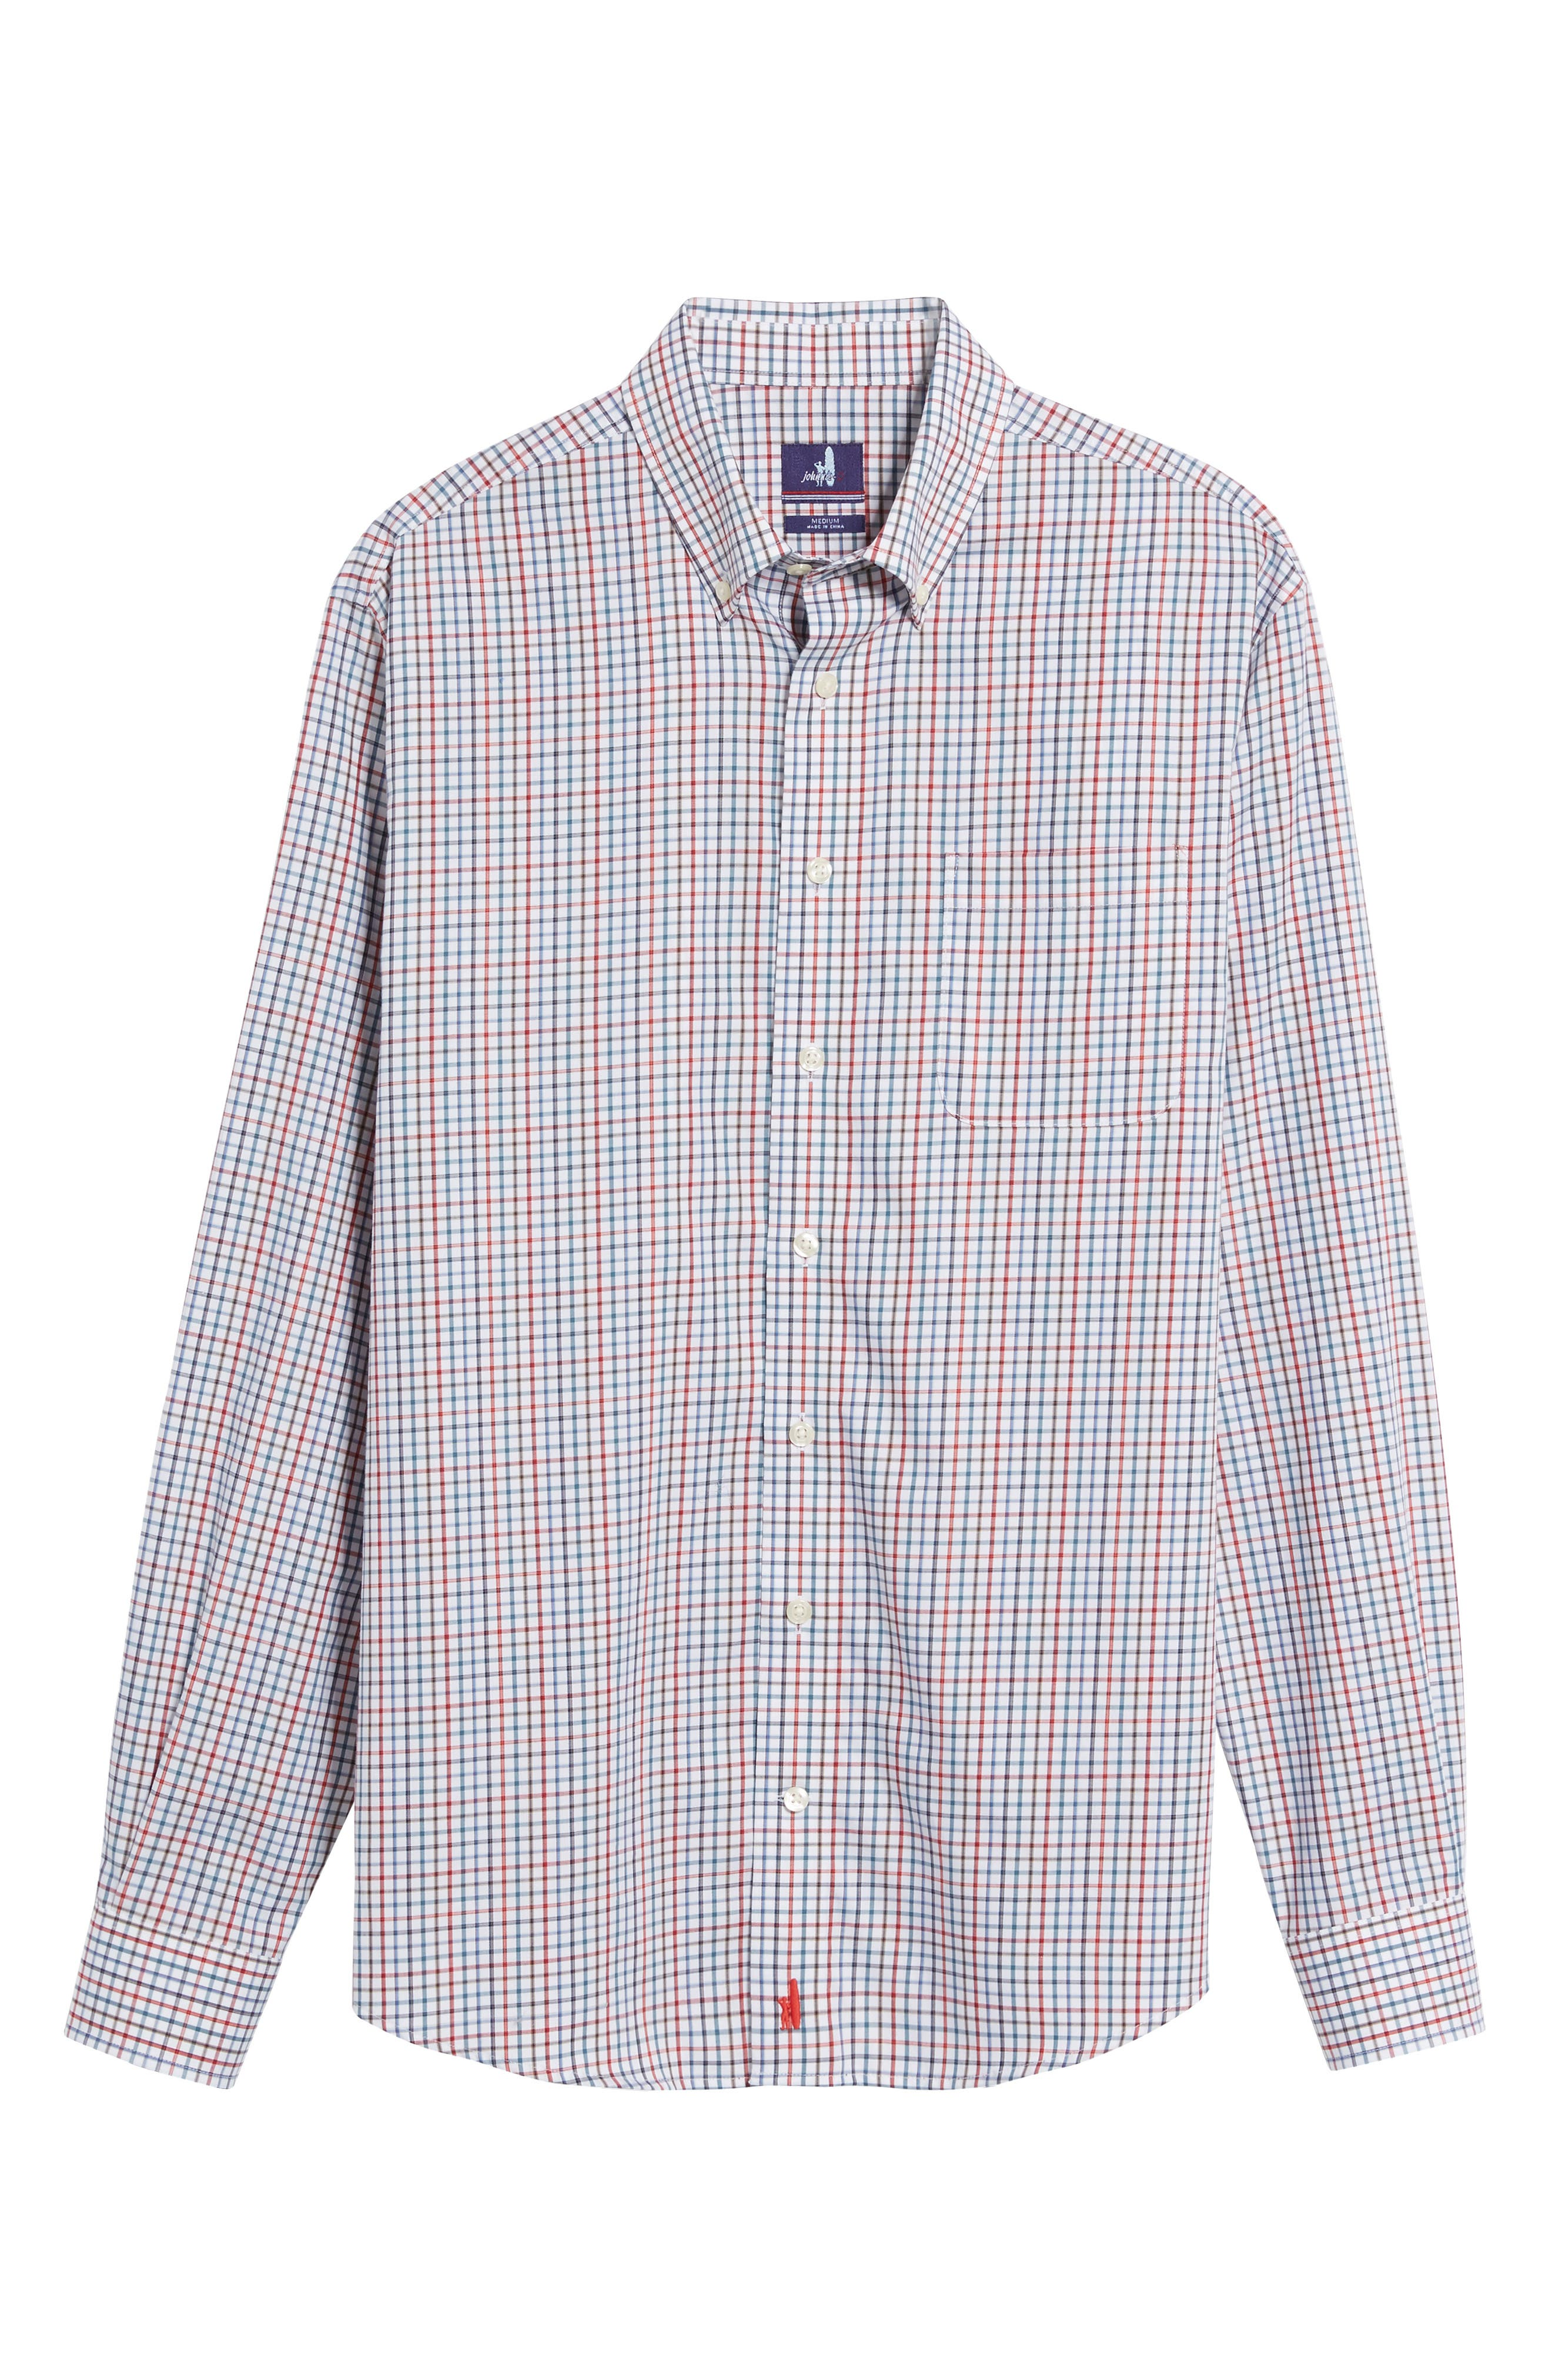 Snyder Classic Fit Check Sport Shirt,                             Alternate thumbnail 6, color,                             Phoenix